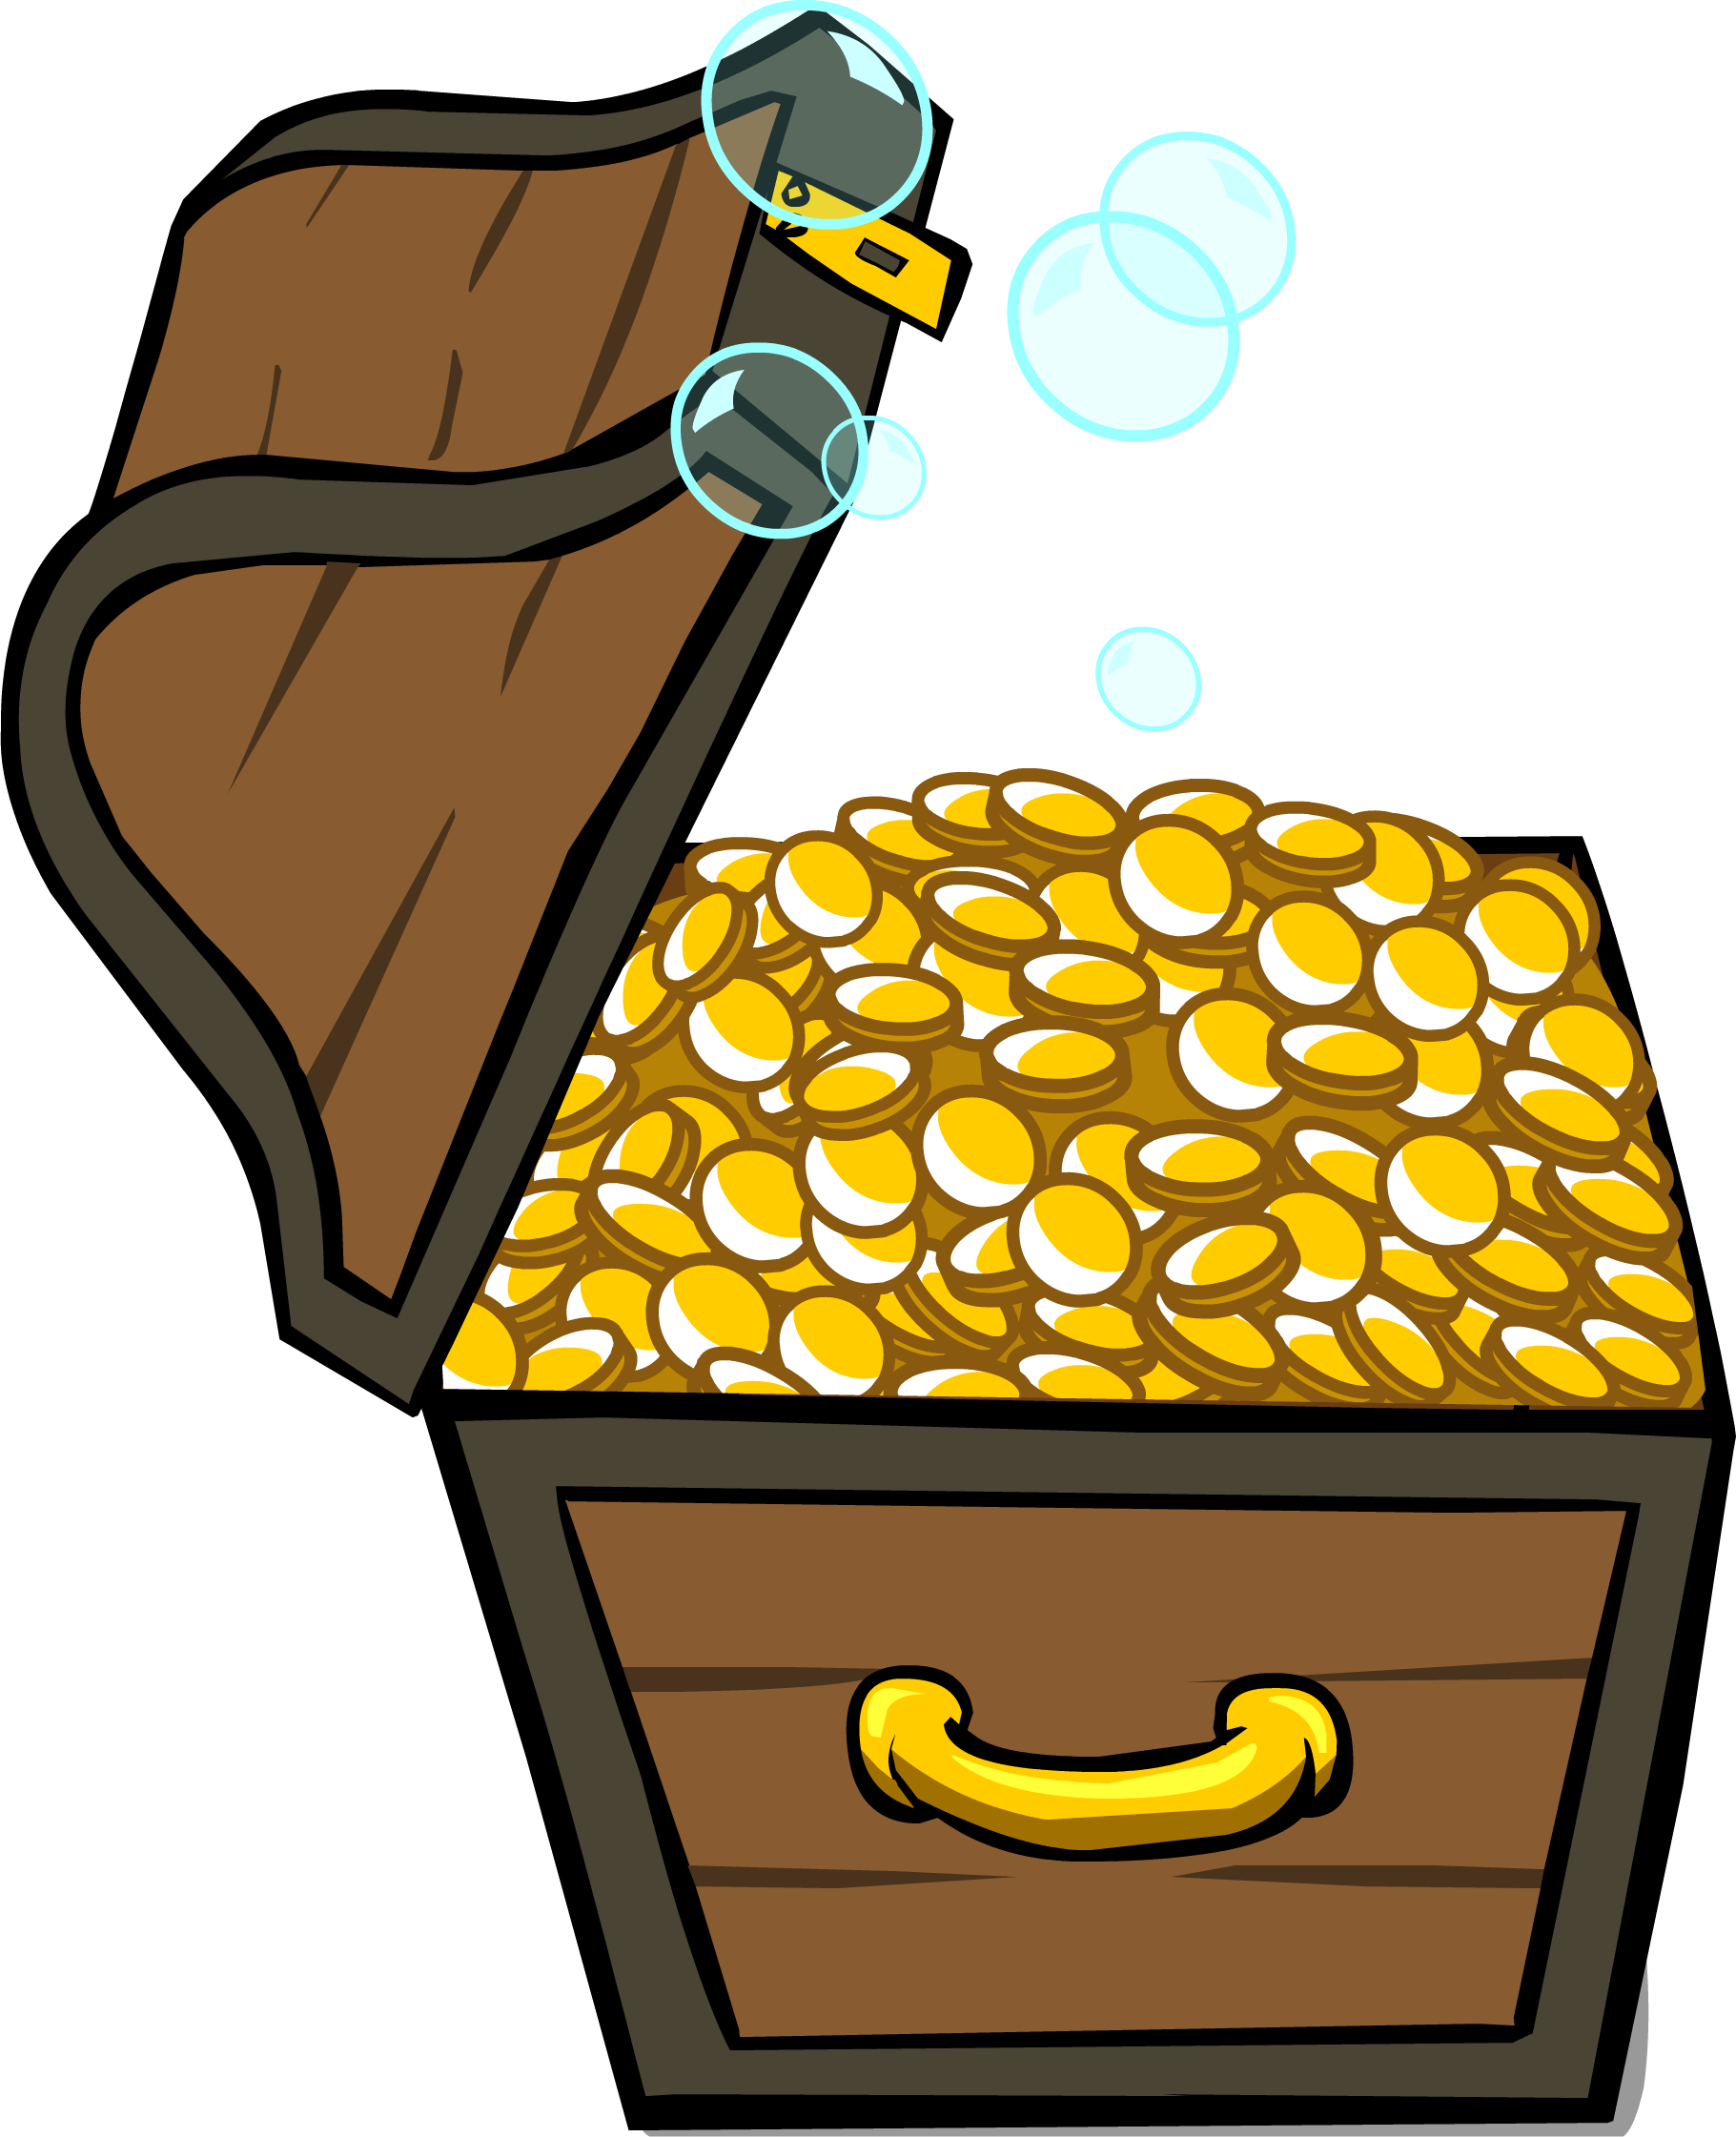 image free Chest clipart treasure room. Image id sprite png.